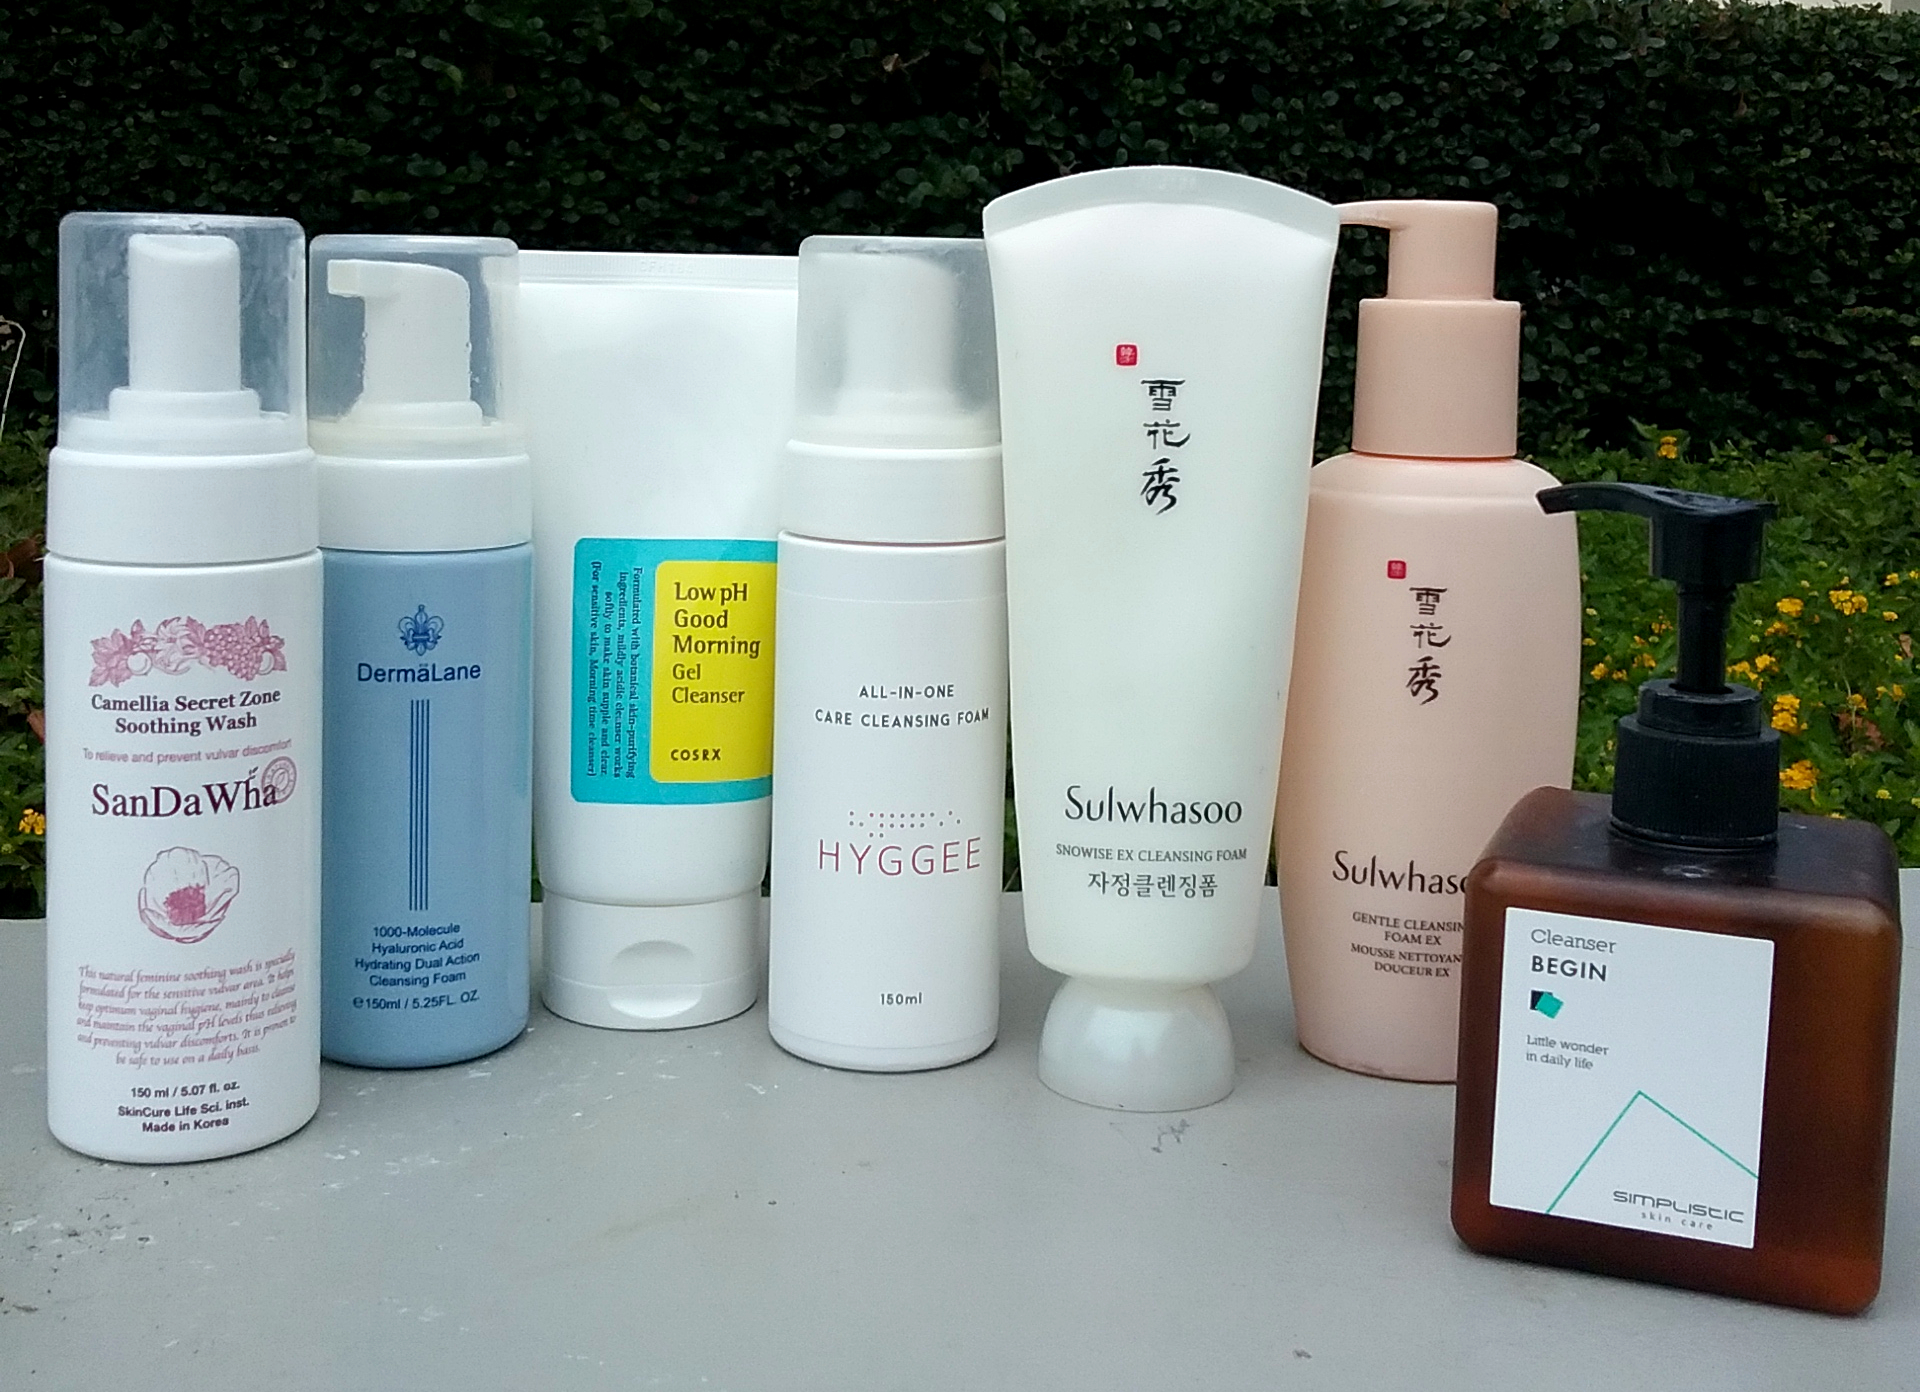 Ph facial cleansers